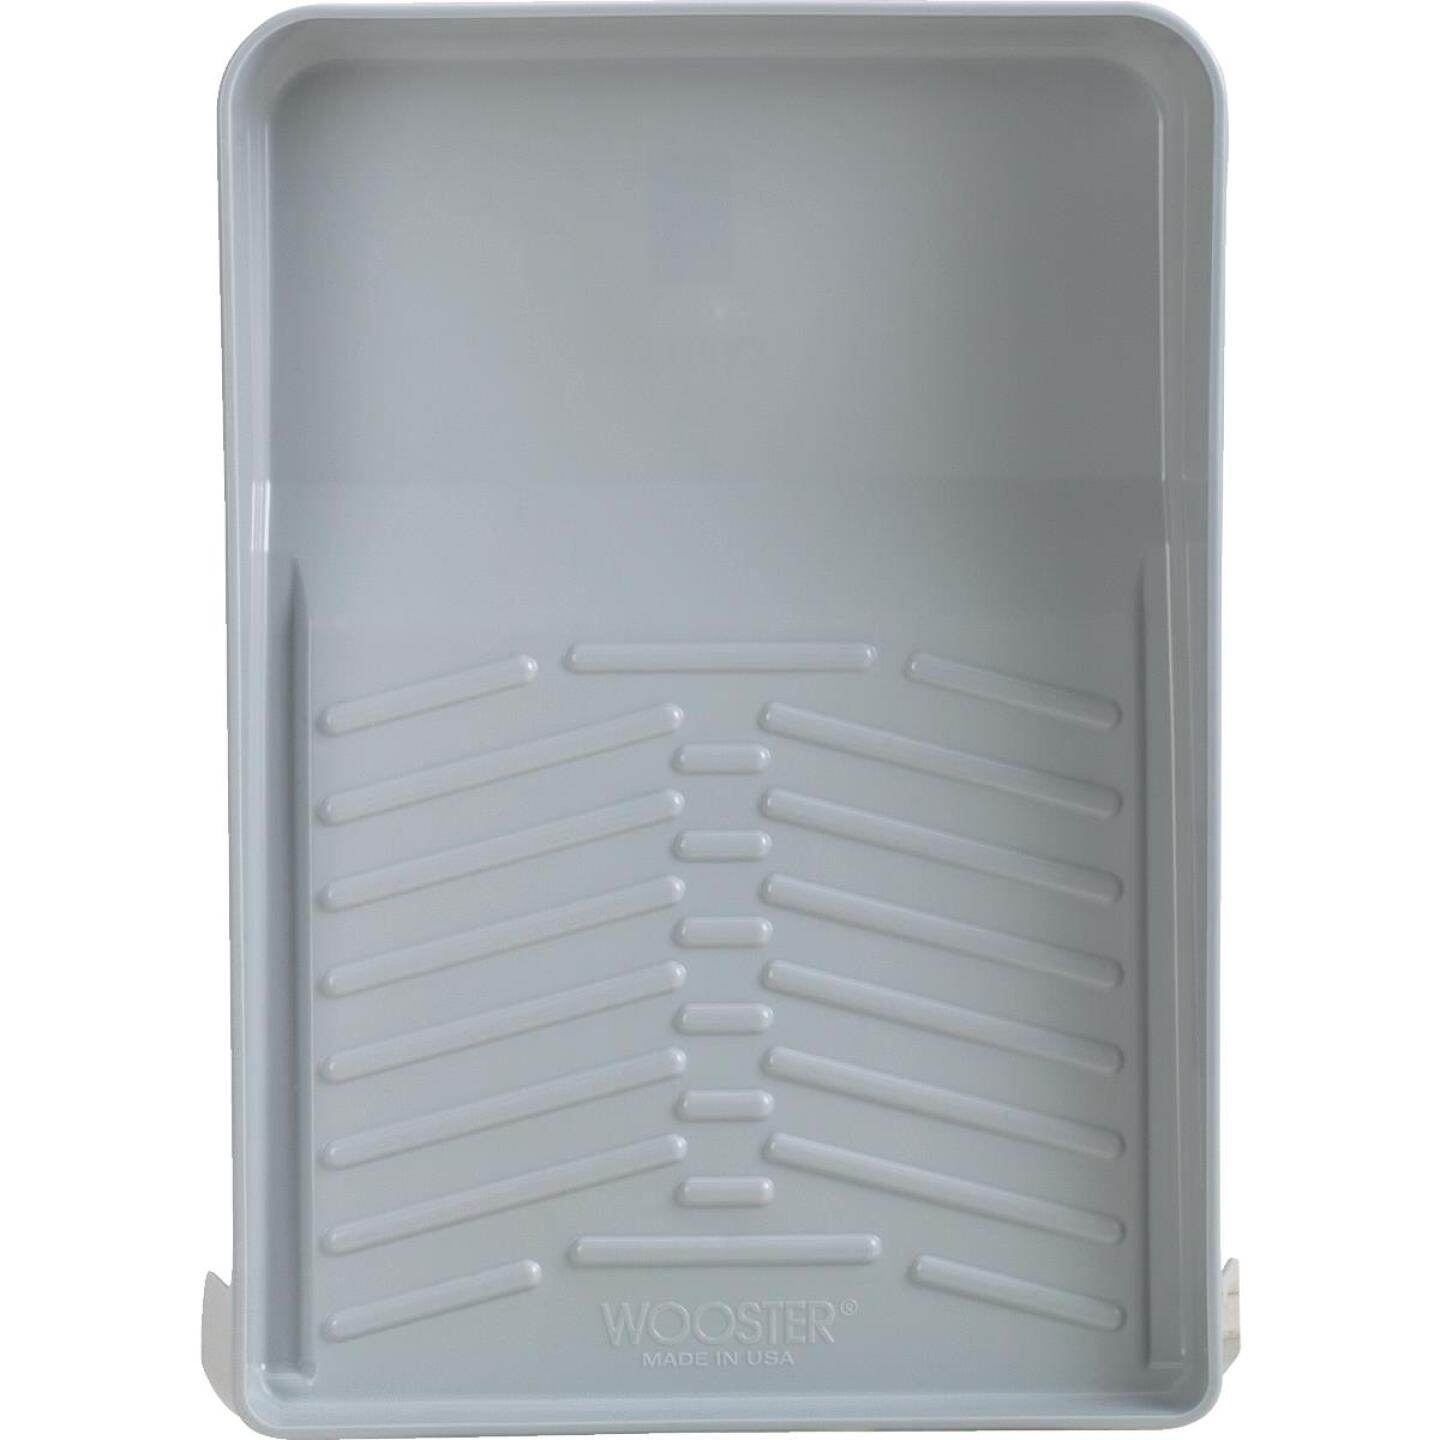 Wooster Deluxe 11 In. Polypropylene Paint Tray Image 2